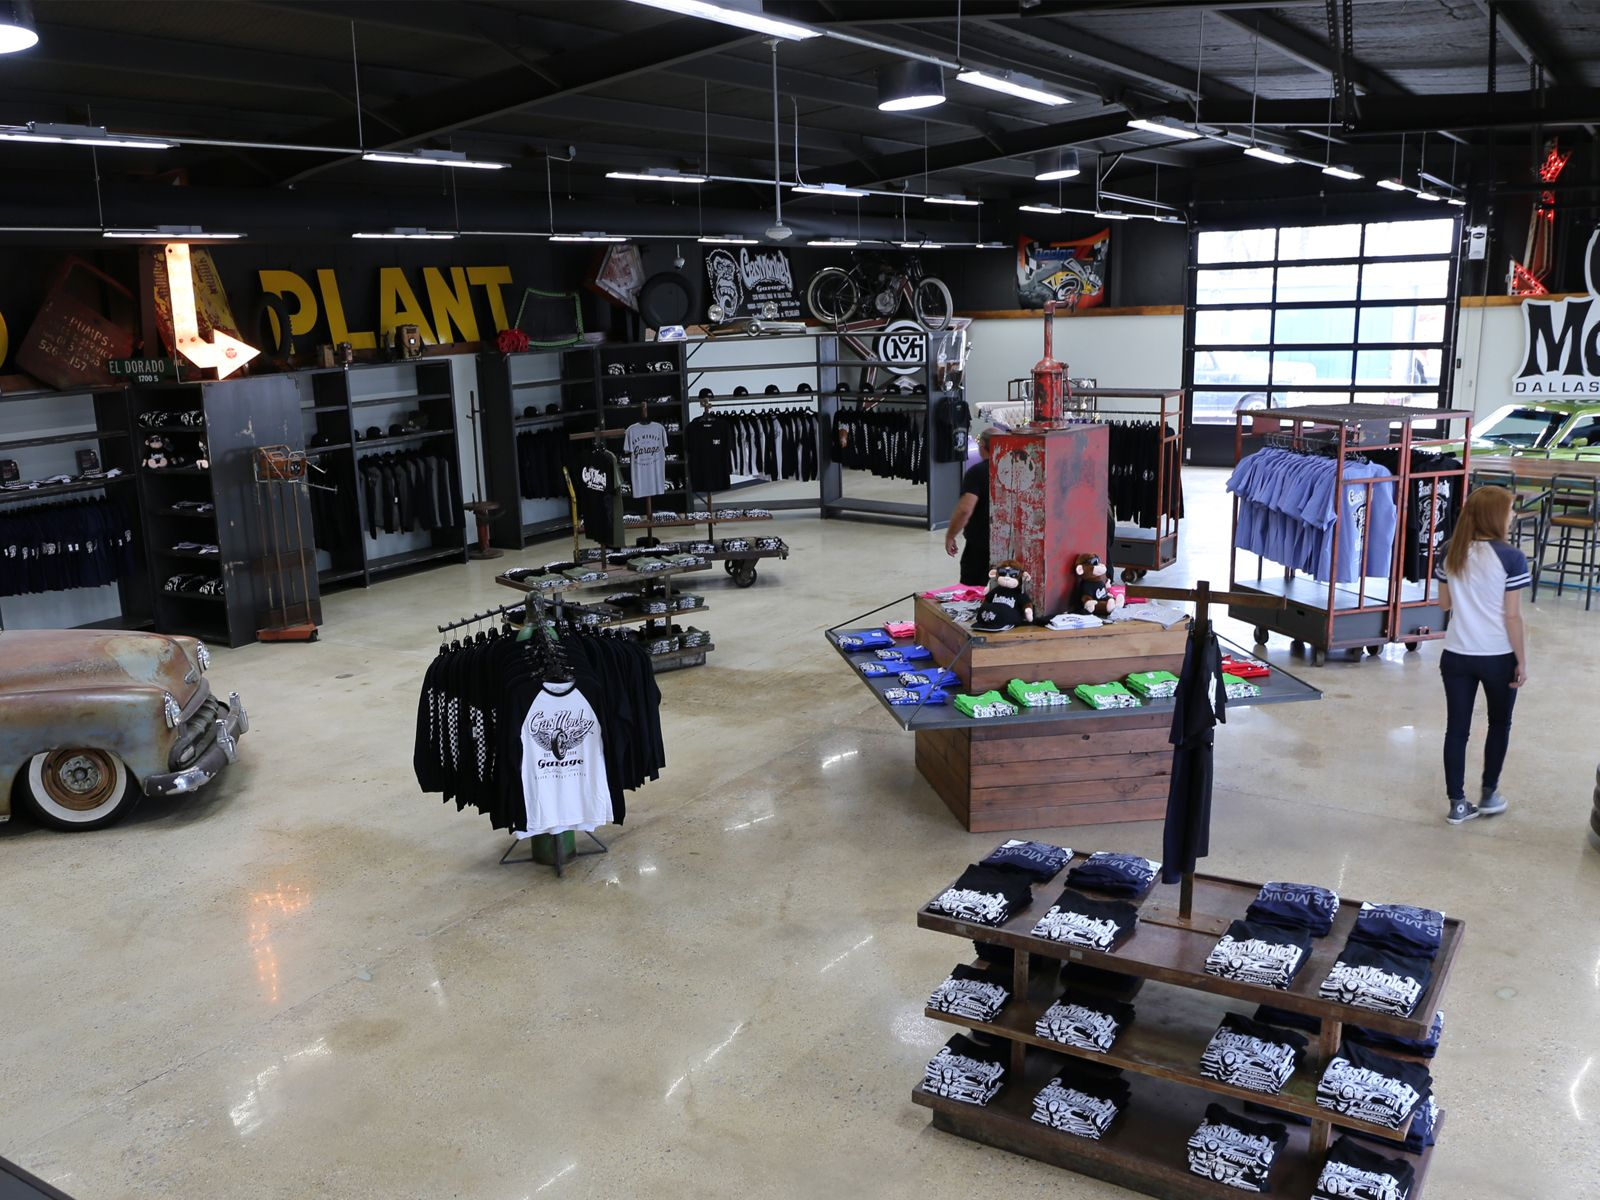 Gasmonkeygarage Gmg Rrr Richardrawlings Retail Design Office Spaceplan Finishout Fixtures Merchandise Gas Monkey Garage Grill Design Garage Design